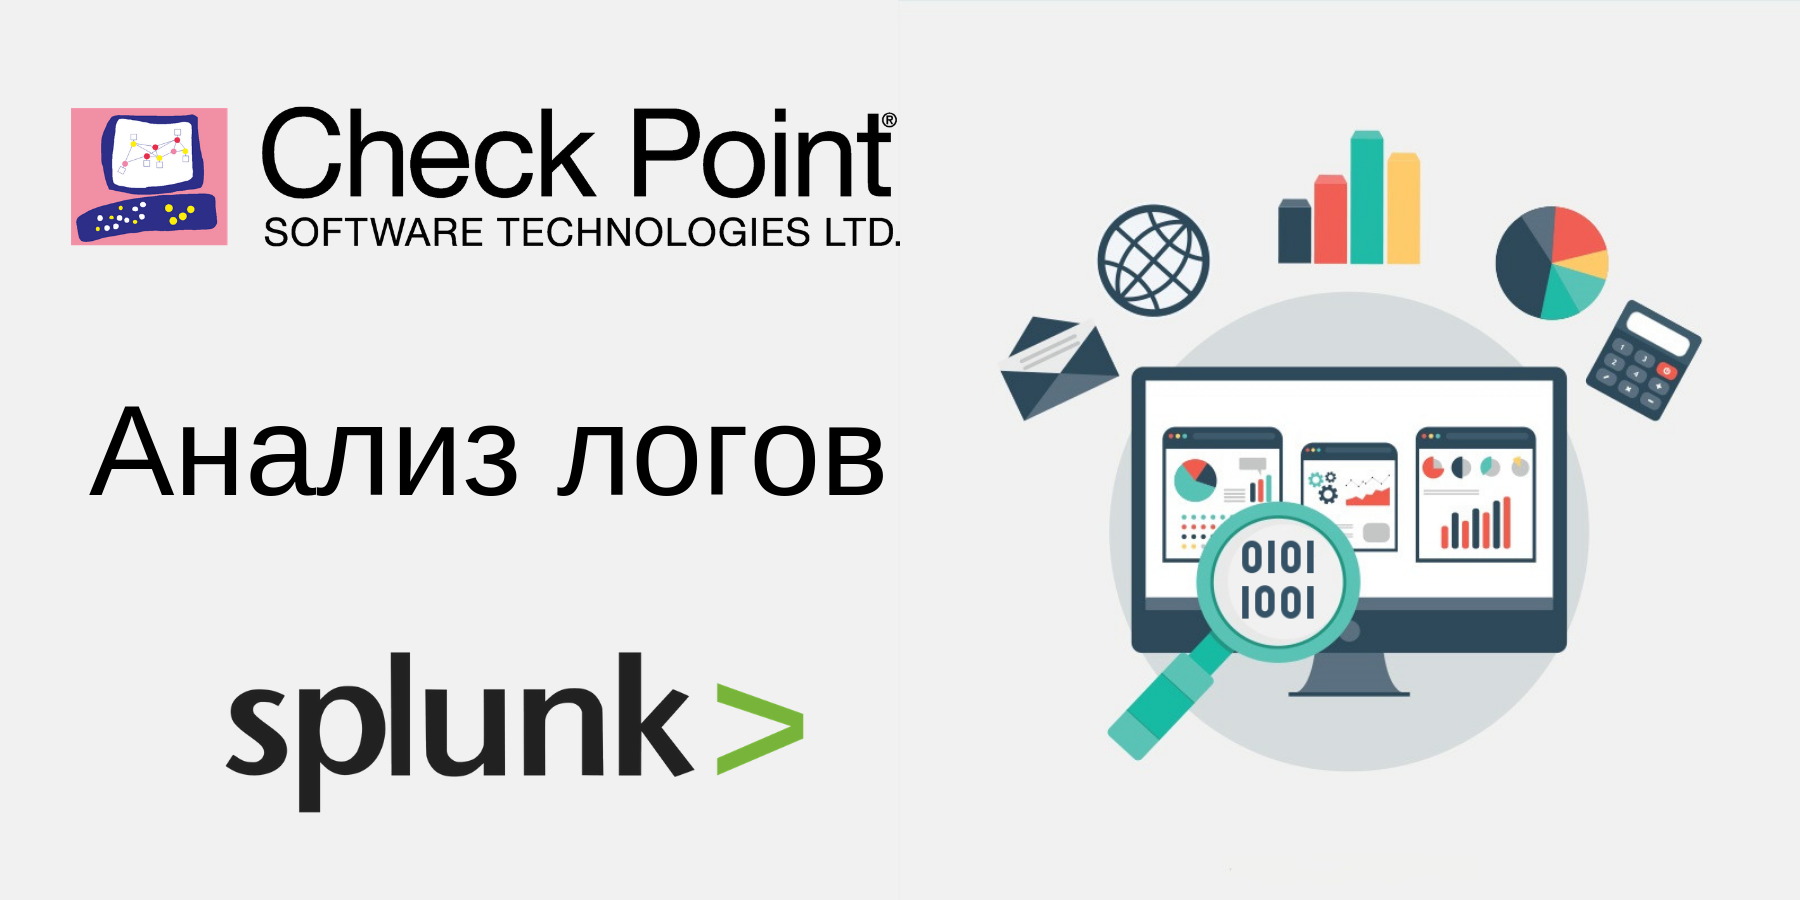 1  Check Point Log Analysis: The Official Check Point App